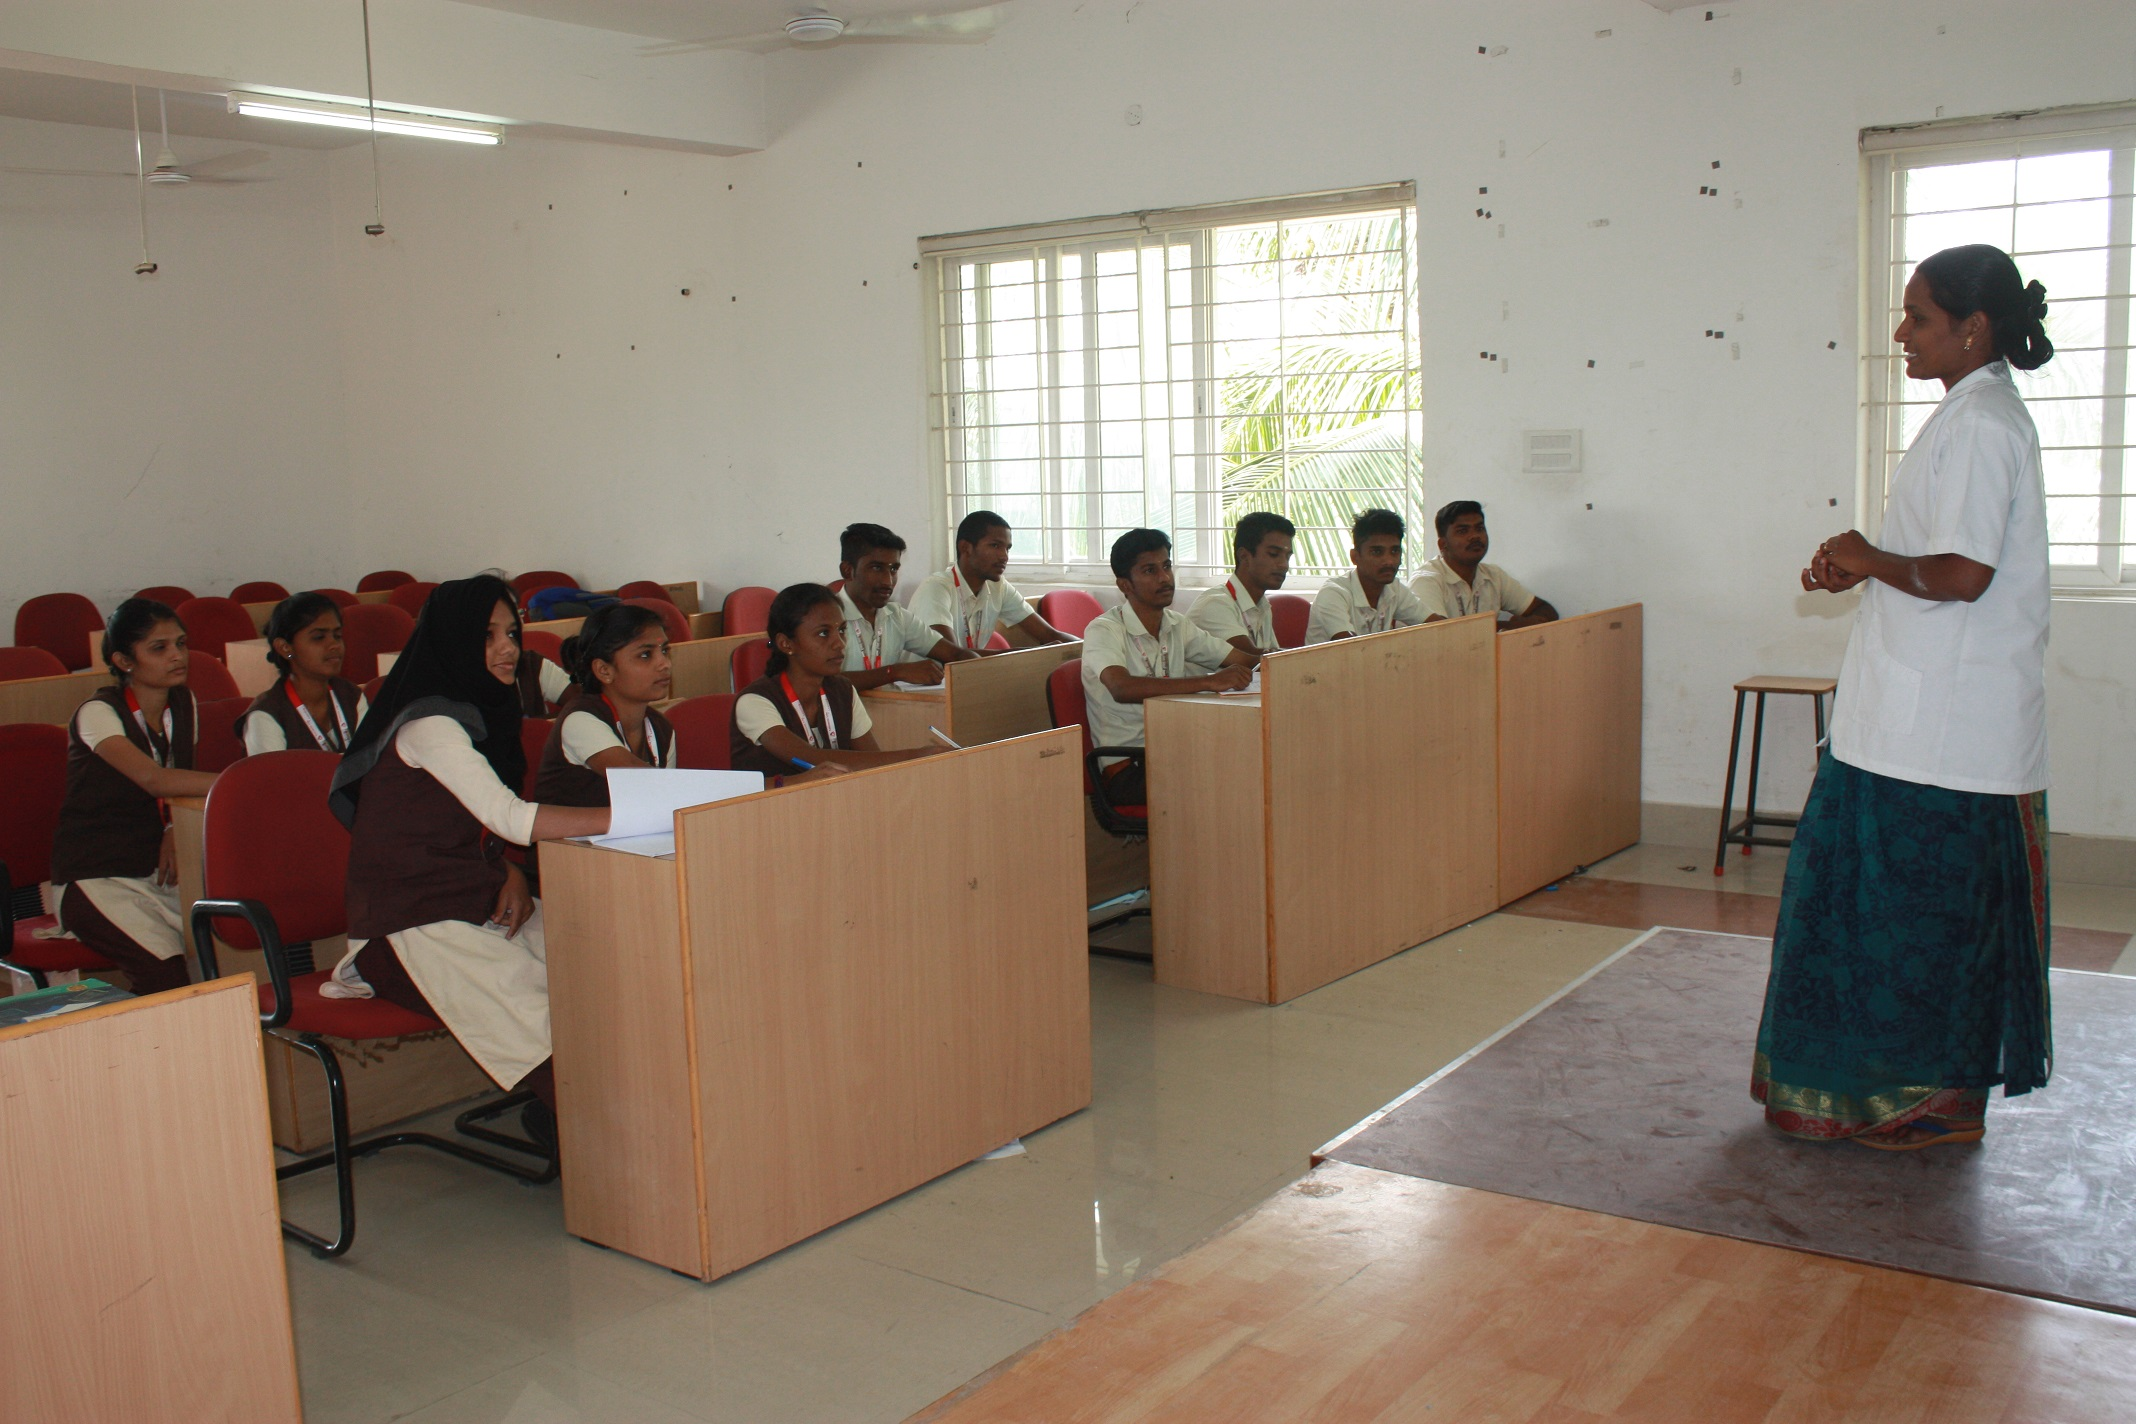 Operation Theatre class room shanmugha college